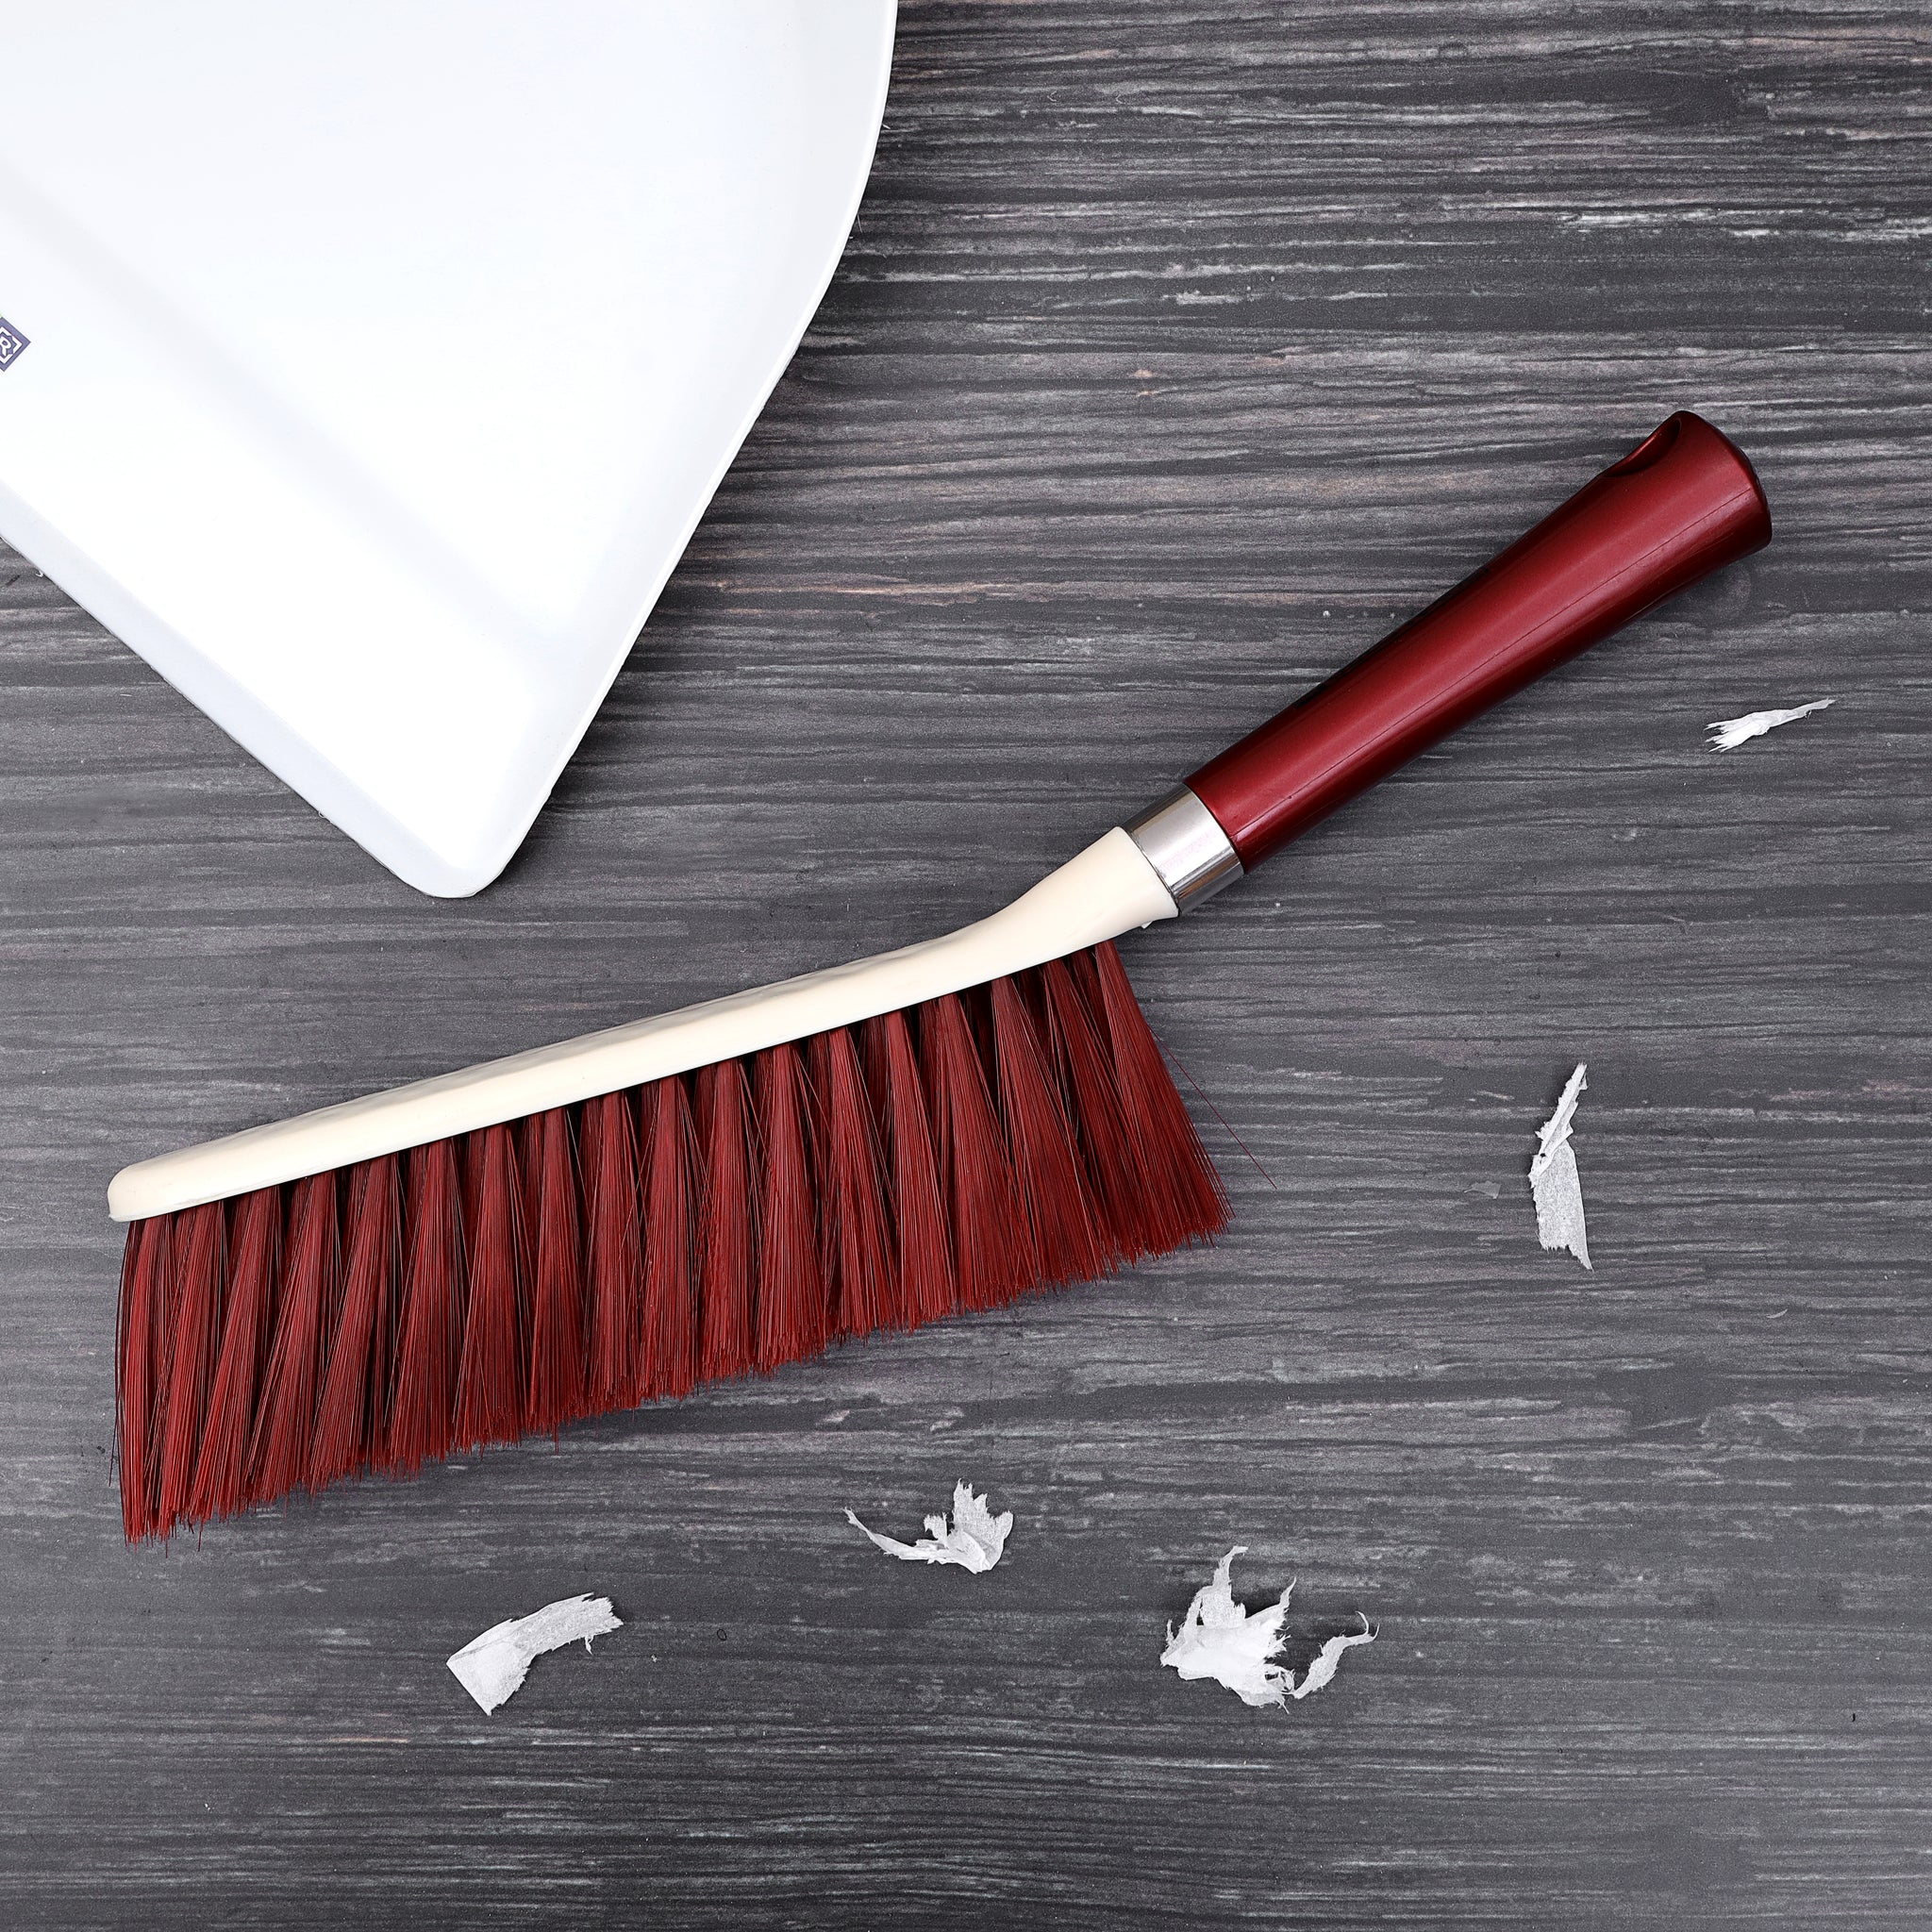 Royalford RF7000  Dust Brush - Durable Household Hand Scrub Brush with Dense Stiff Bristles | Hanging Loop | Ergonomic & Non-Slip Grip for Sweep, Cleaning, & Removing Dust from the Surface